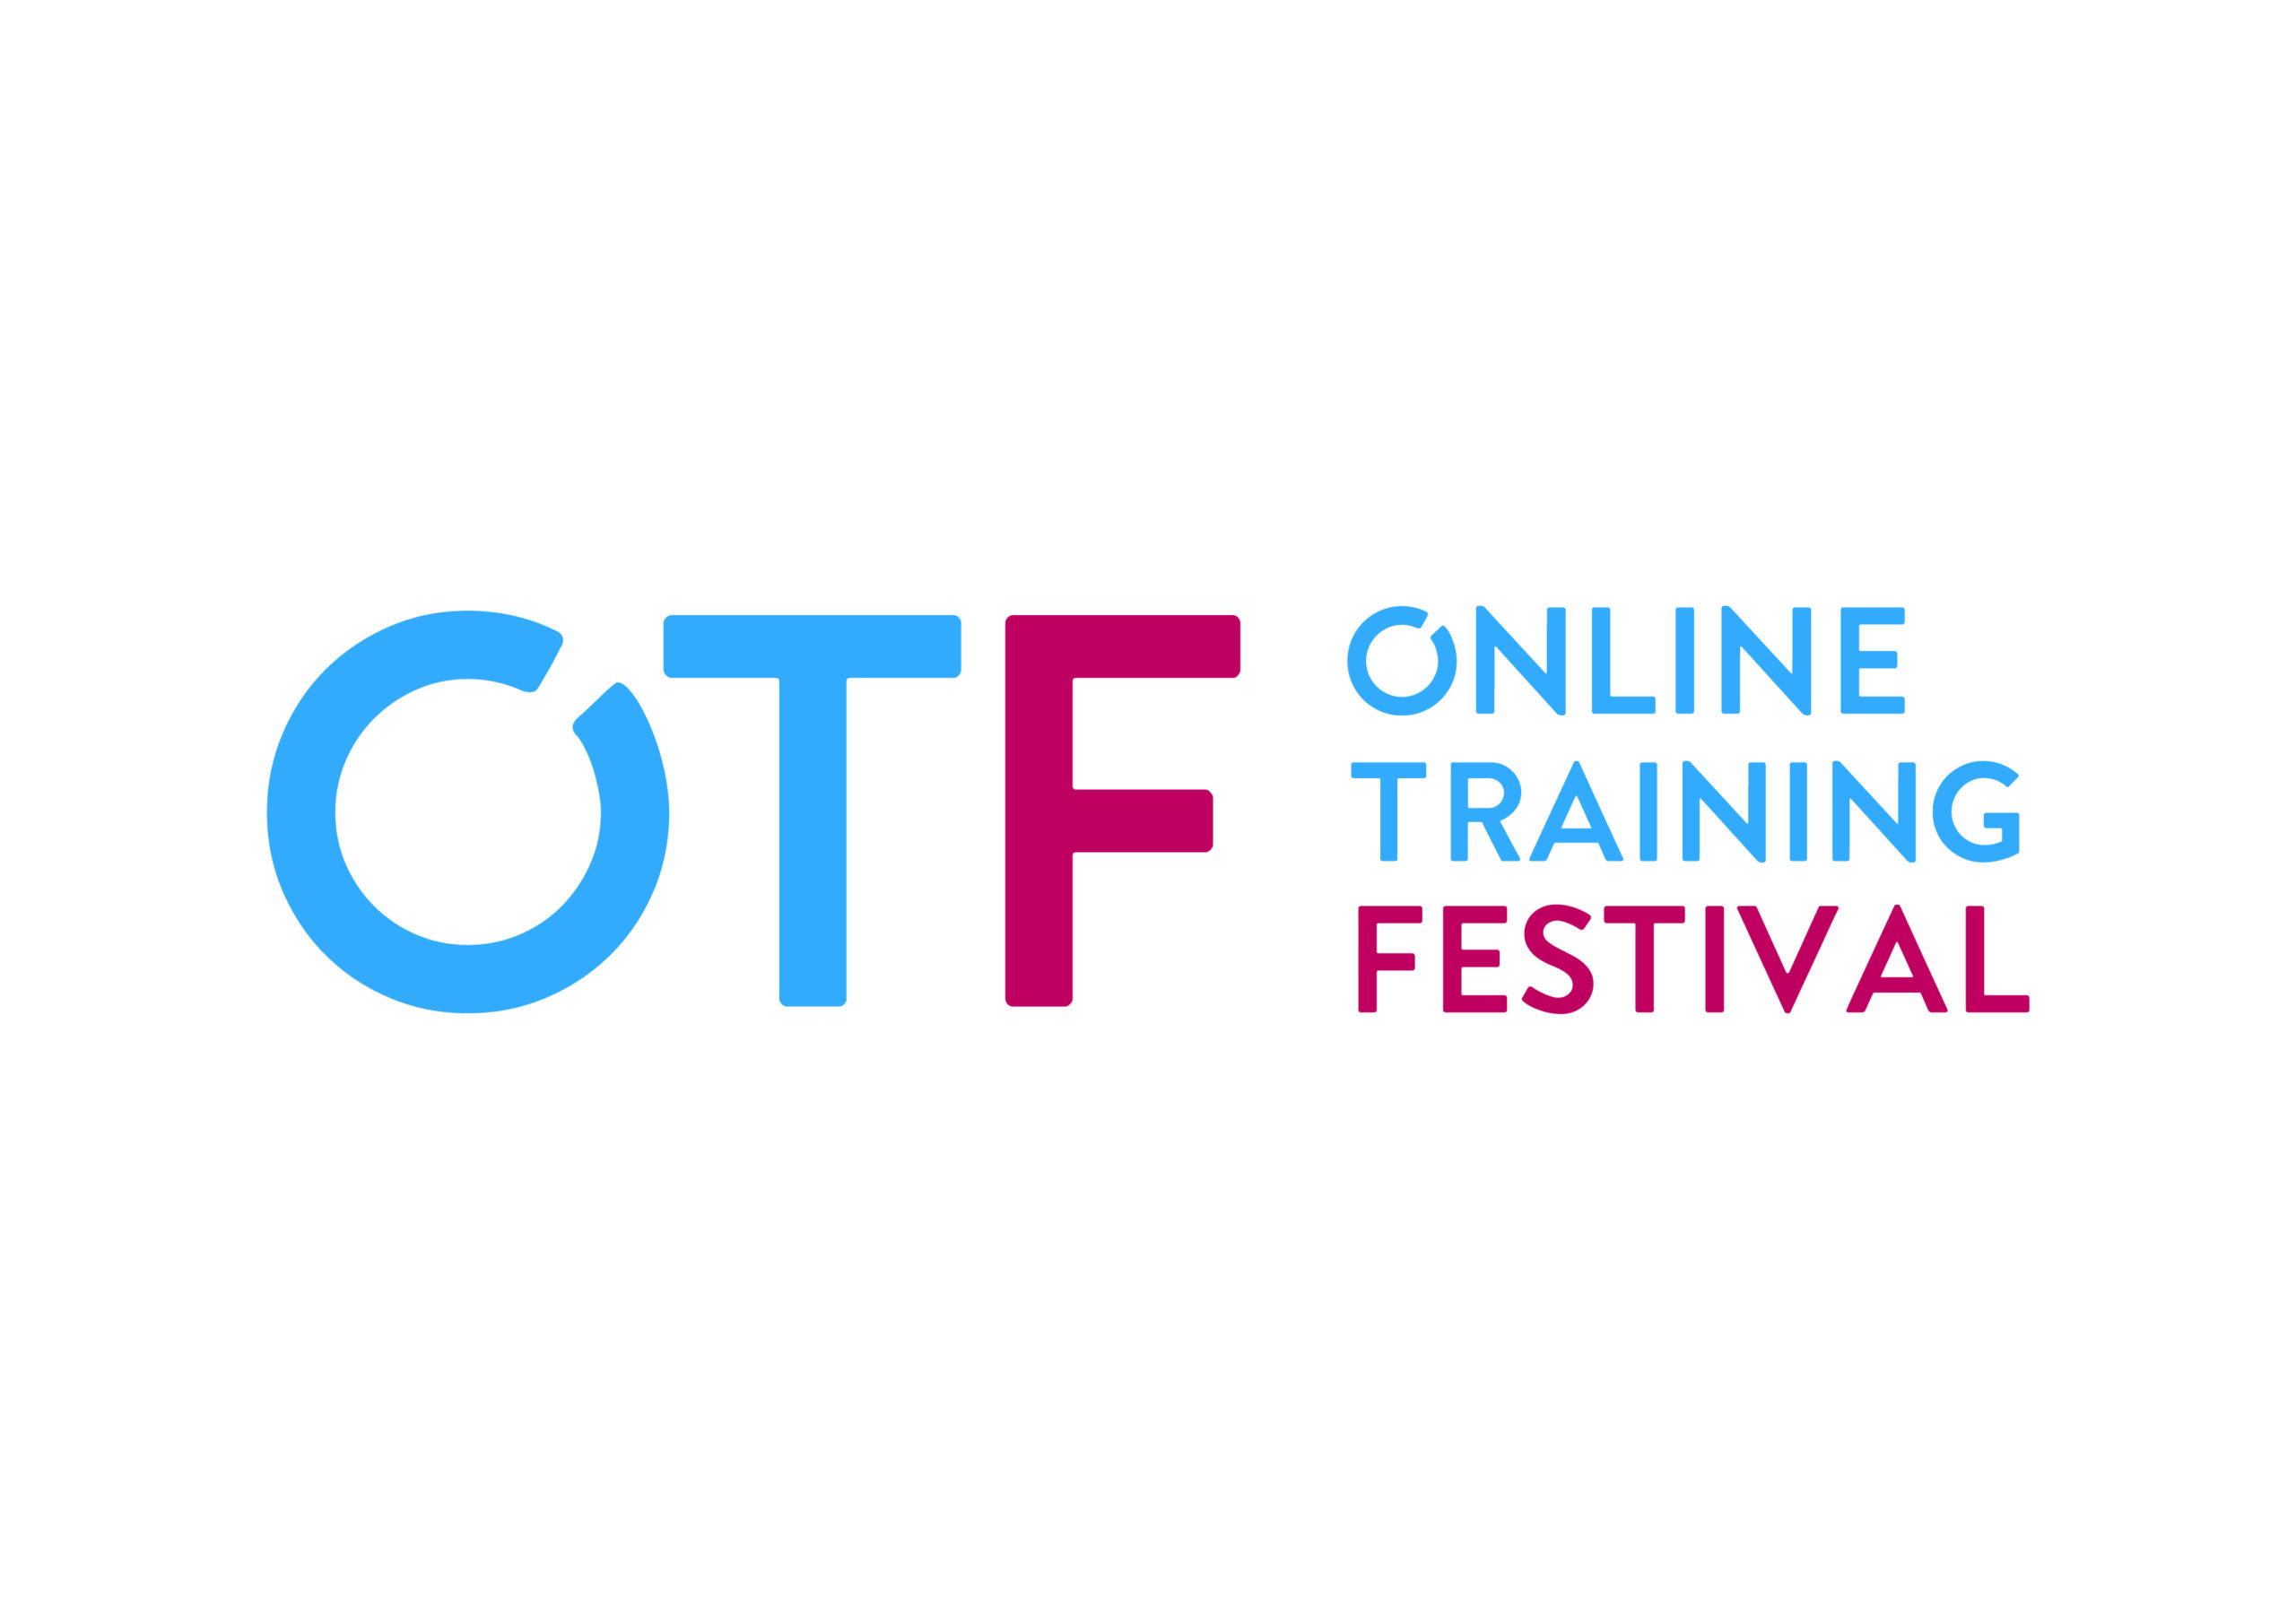 ONLINE TRAINING FESTIVAL